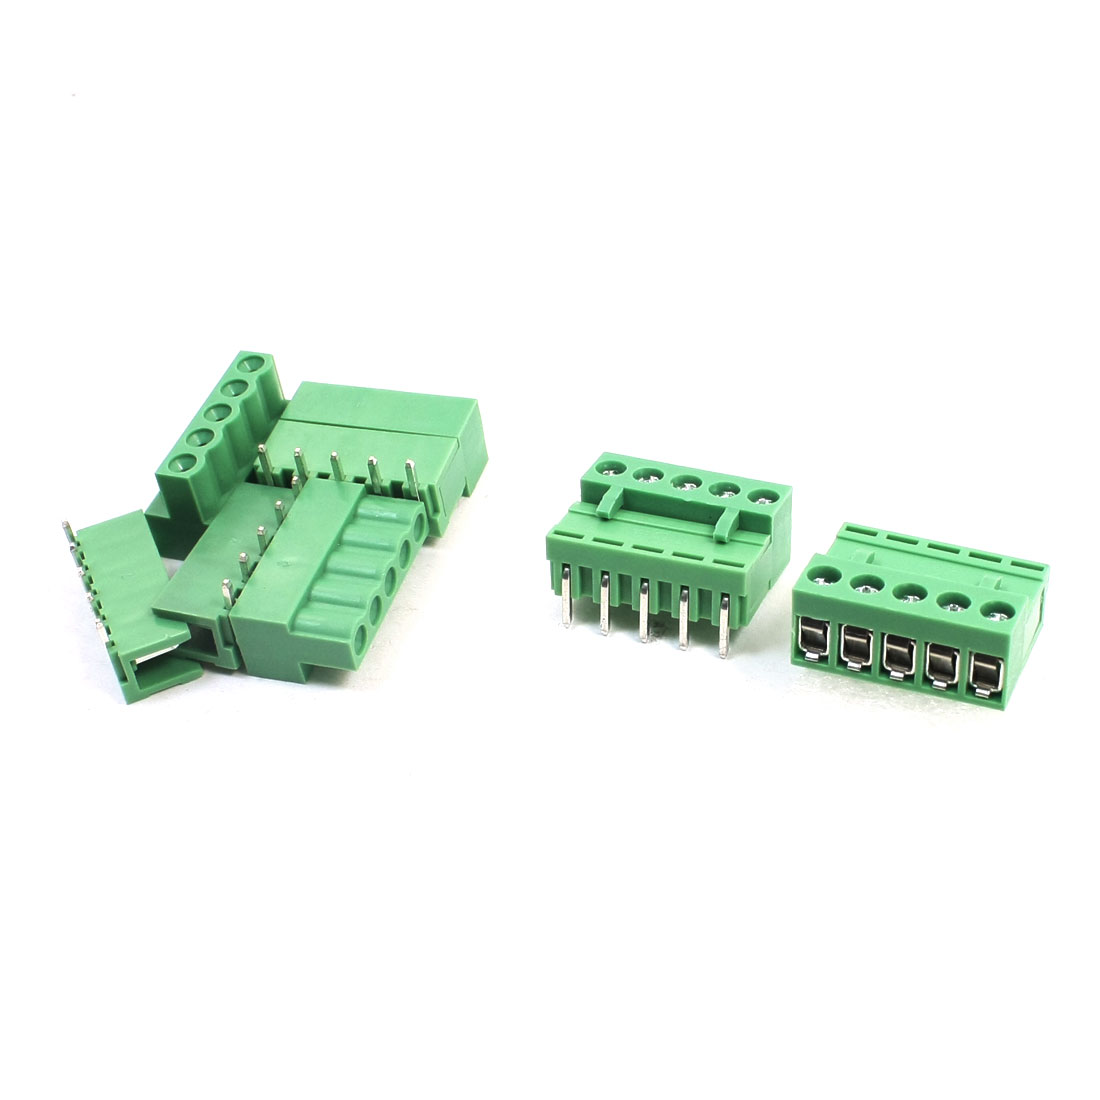 5Pcs 300V 10A 5.08mm Pitch 5-Pin Through Hole Pluggable Type PCB Screw Terminal Barrier Block Connector for 14-26AWG Wire